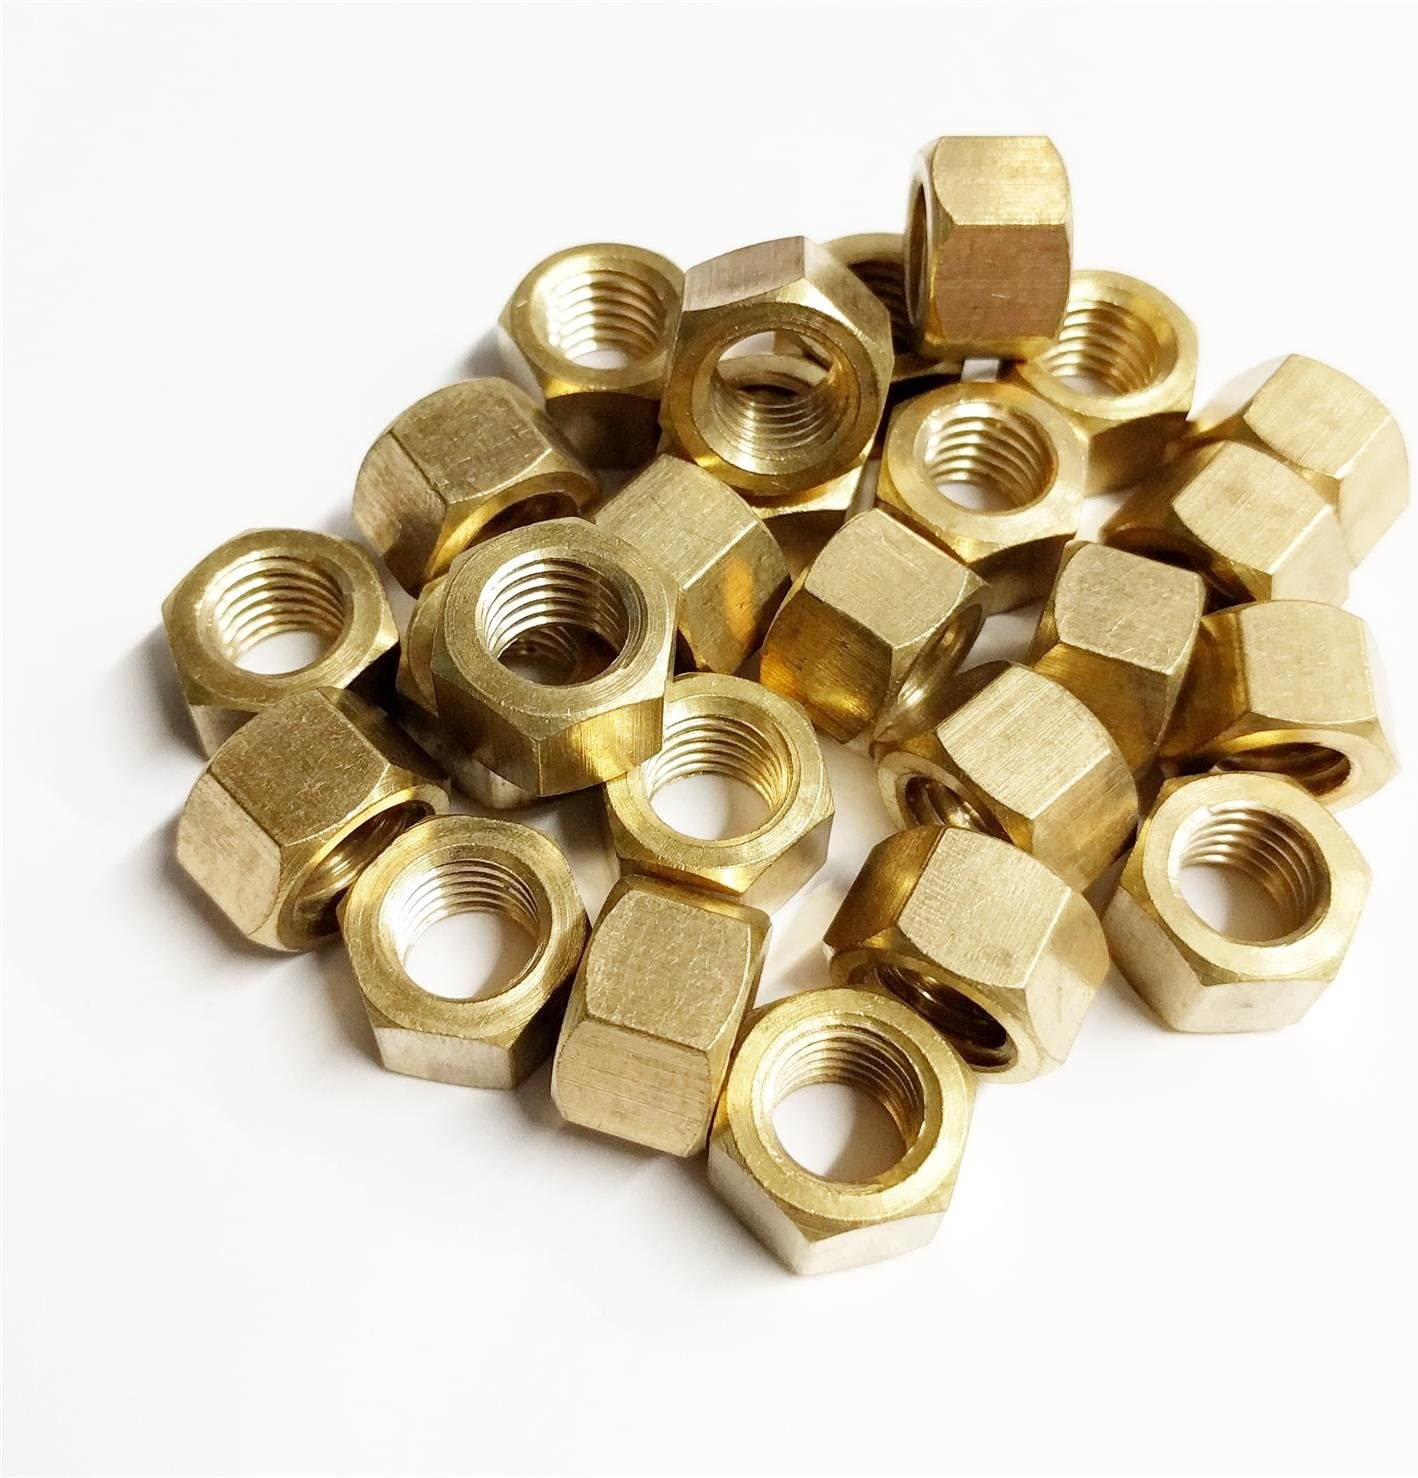 25x Brass Imperial Exhaust Manifold Nut 7//16 UNF High Temperature Nuts